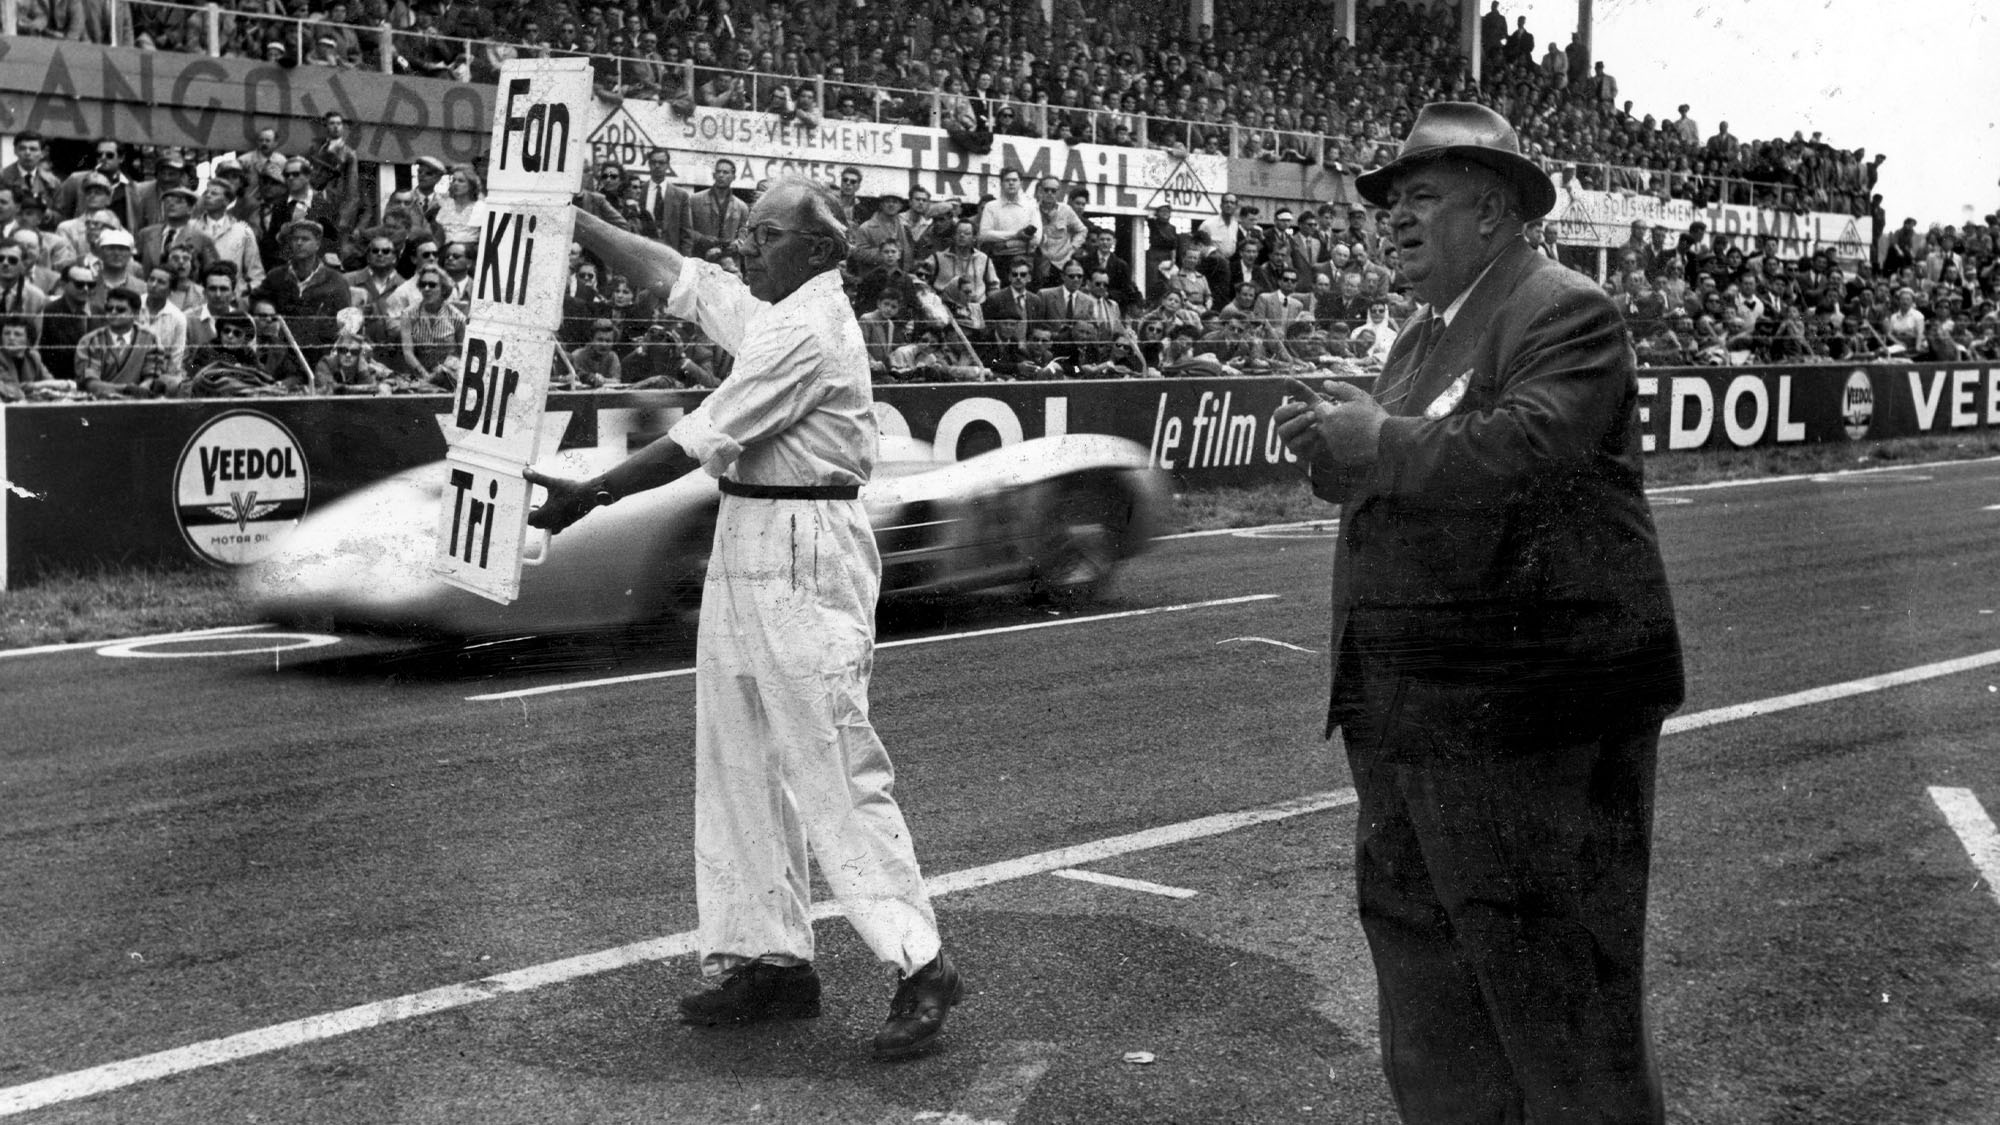 17th July 1954: Alfred Neubauer, team manager of Mercedes Benz instructs a mechanic to signal to the two Mercedes during a French Grand Prix at Reims. It was the first time German cars had competed for 15 years. Original Publication: Picture Post - 7209 - First Race Of The Mercedes - A Ruthless Triumph - pub. 1954 (Photo by Joseph McKeown/Picture Post/Hulton Archive/Getty Images)